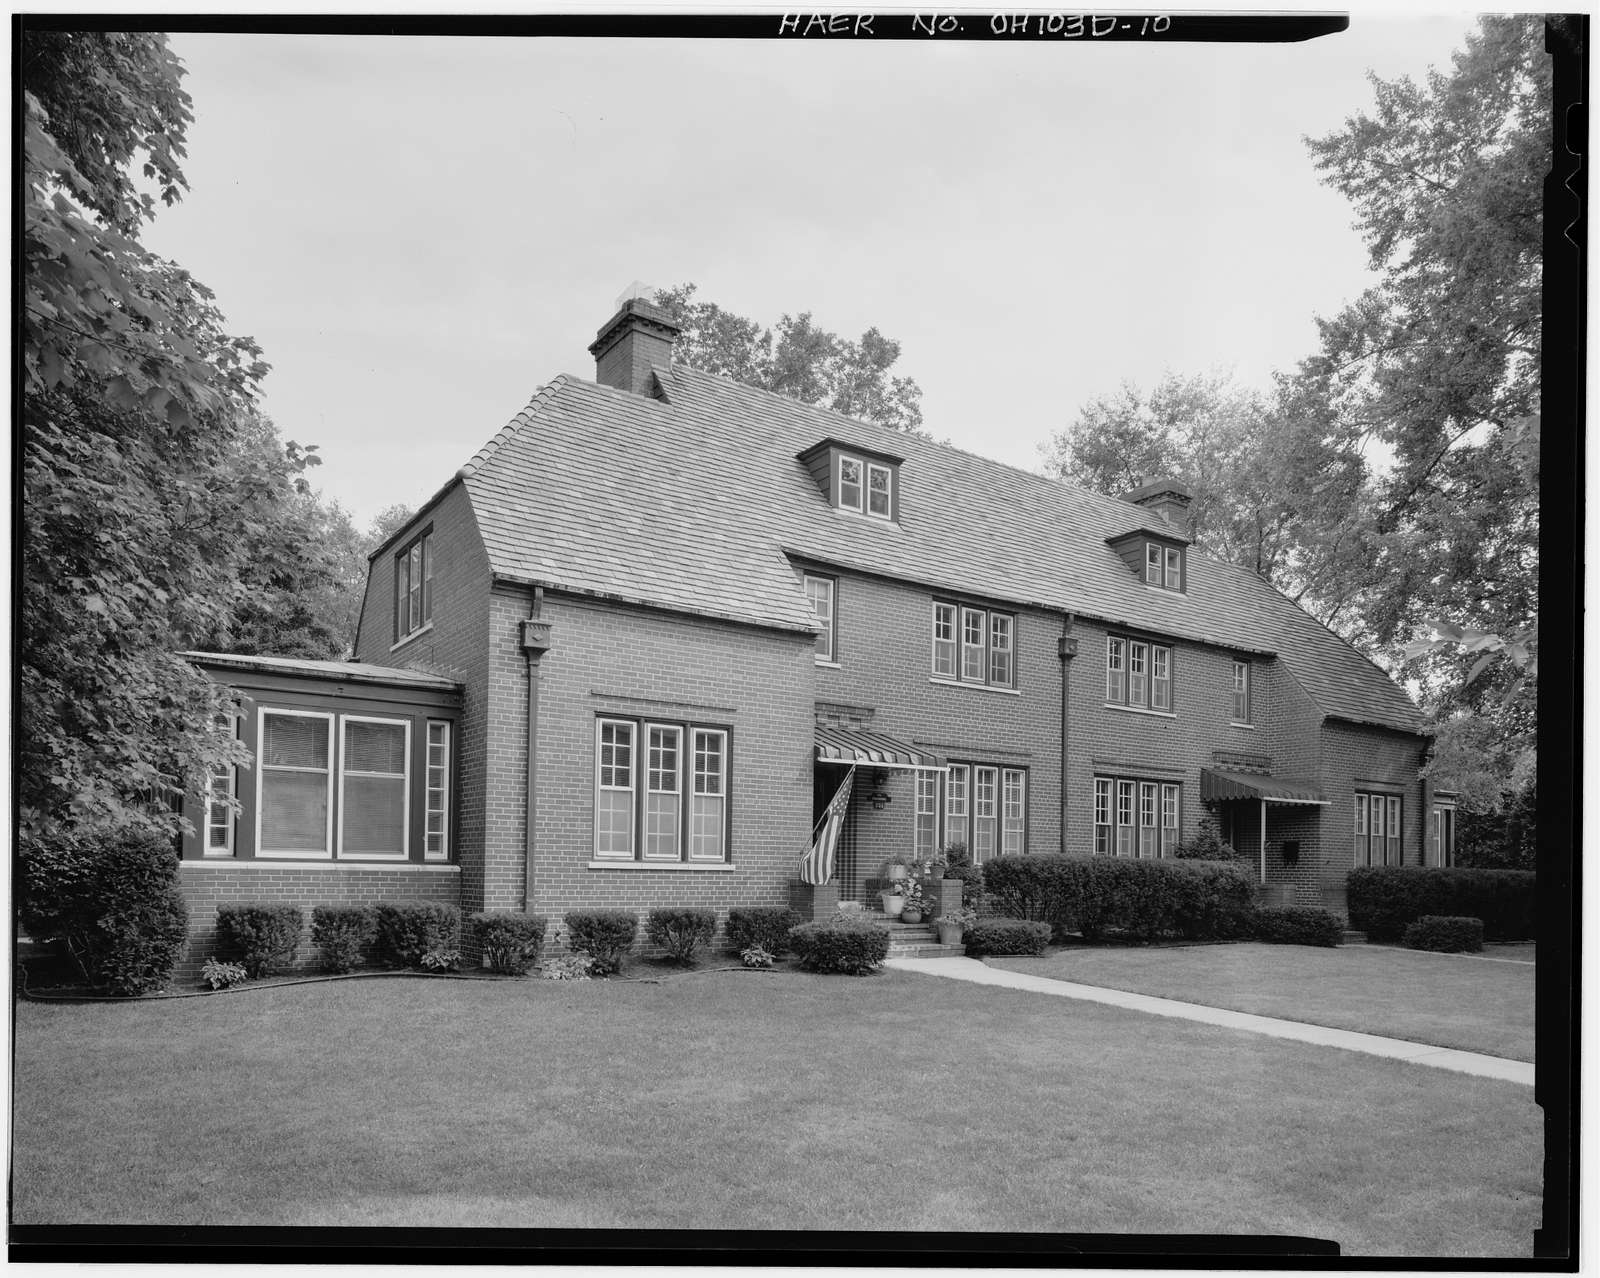 Wright-Patterson Air Force Base, Brick Officers' Quarters, Types E & F, Area A, Dayton, Montgomery County, OH